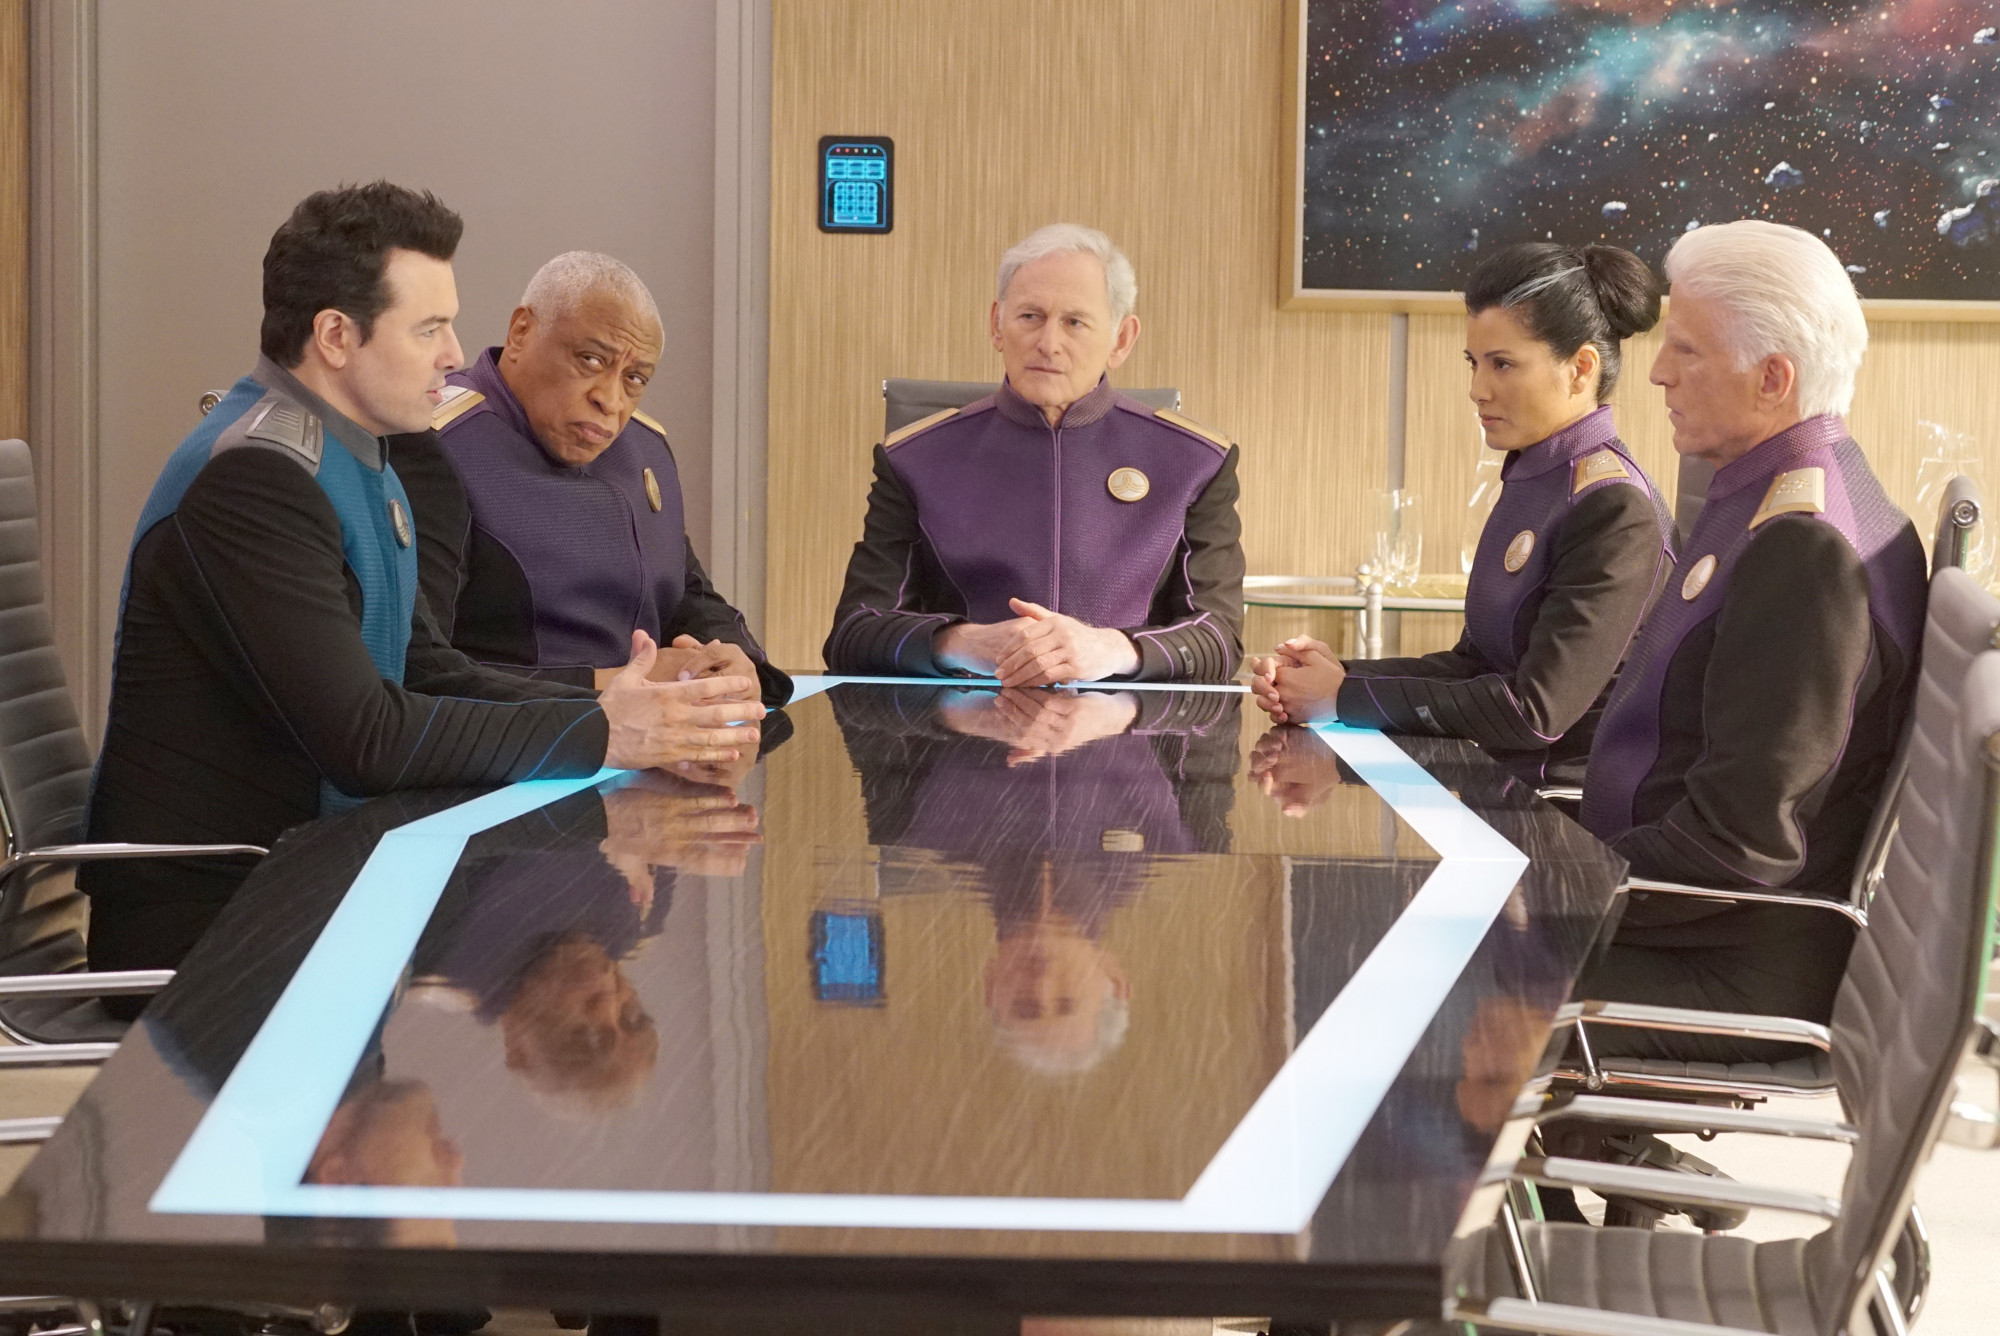 """THE ORVILLE: L-R: Seth MacFarlane, guest star Ron Canada, guest star Victor Garber, guest star Kelly Hu and guest star Ted Danson in the """"Sanctuary"""" episode of THE ORVILLE airing Thursday, April 11 (9:00-10:00 PM ET/PT) on FOX. ©2018 Fox Broadcasting Co. Cr: Kevin Estrada/FOX"""